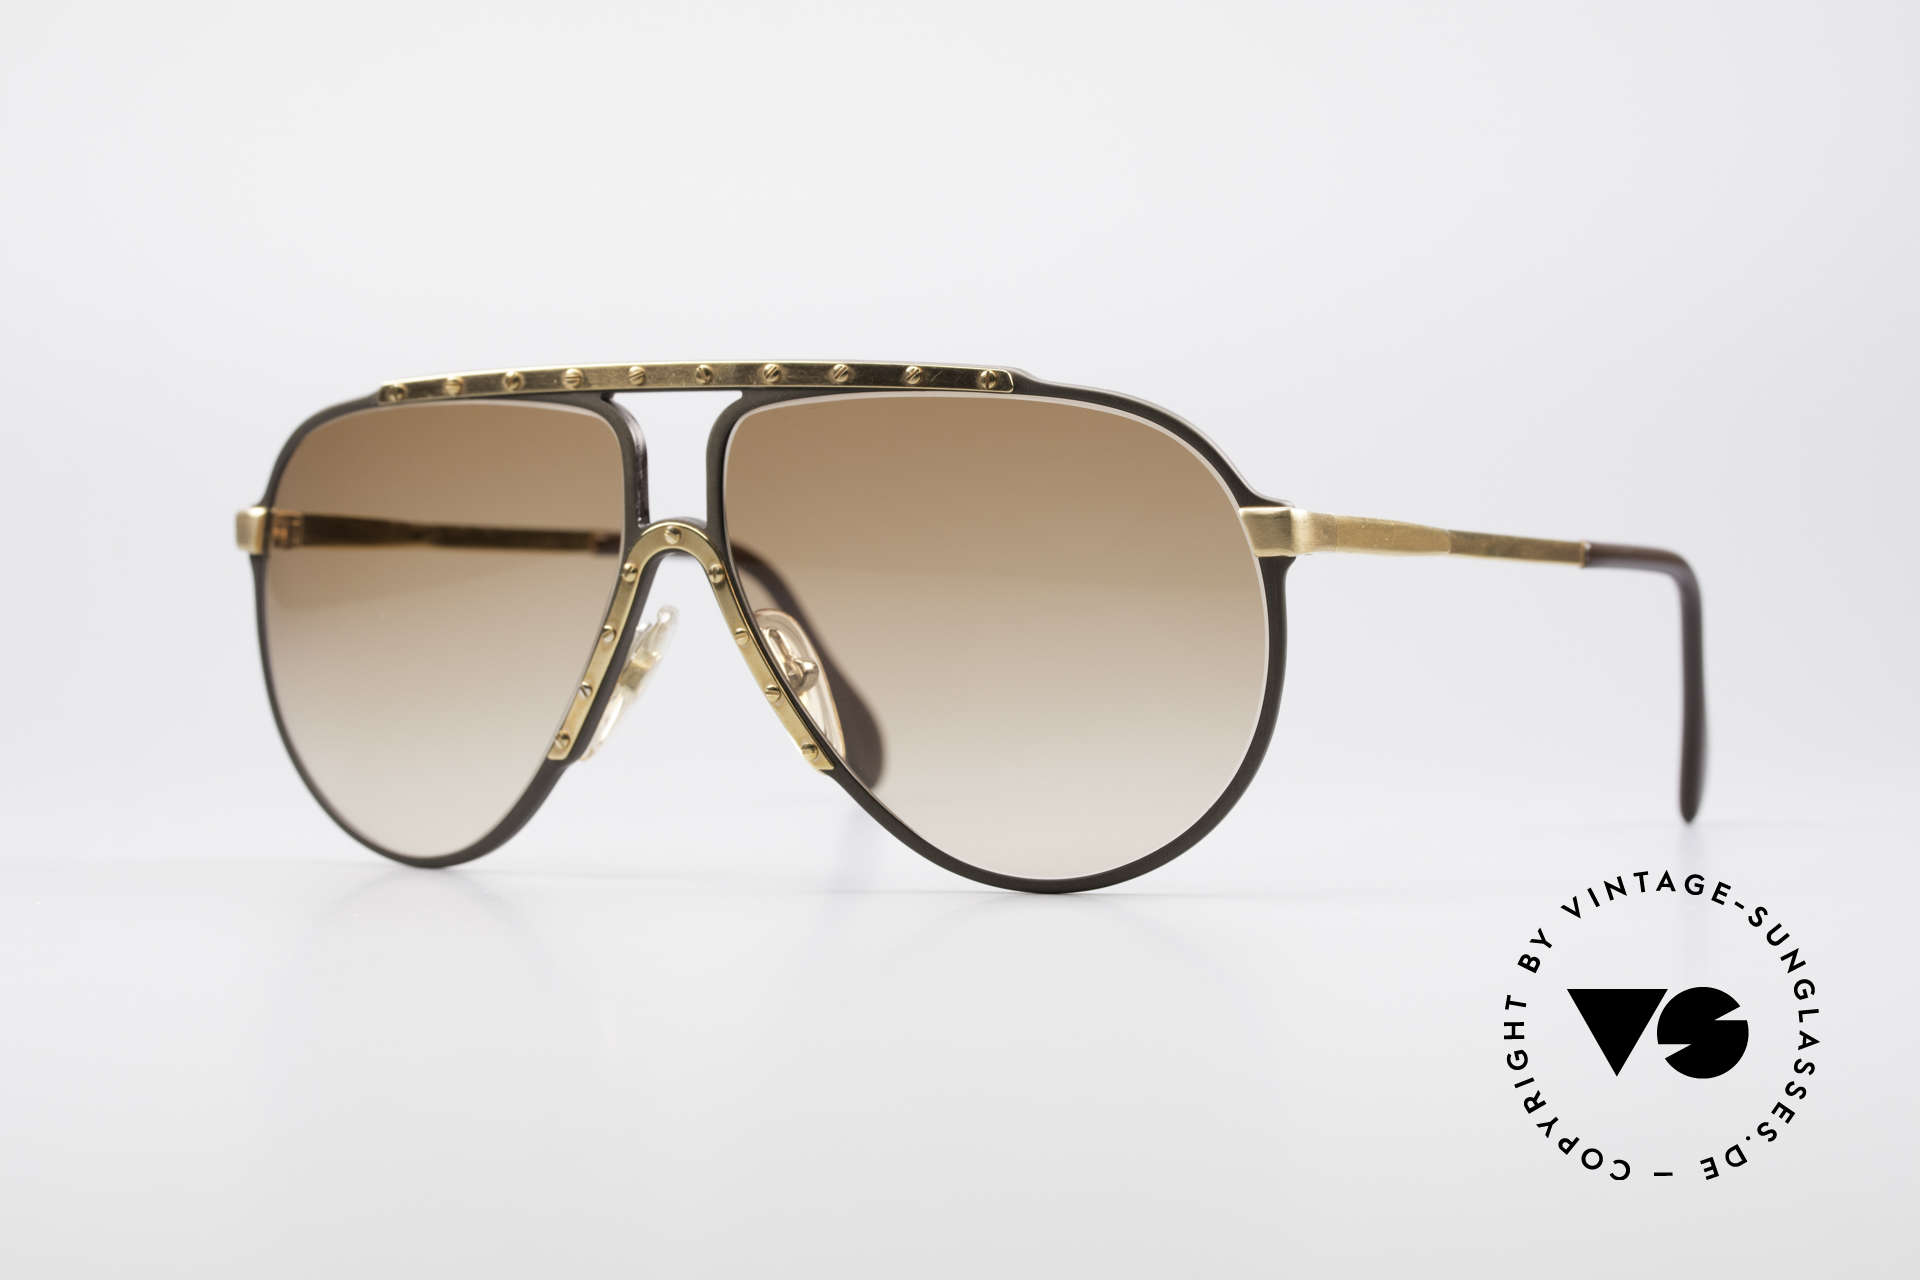 Alpina M1 Iconic West Germany Frame, legendary Alpina M1 sunglasses in small size 60°12, Made for Men and Women